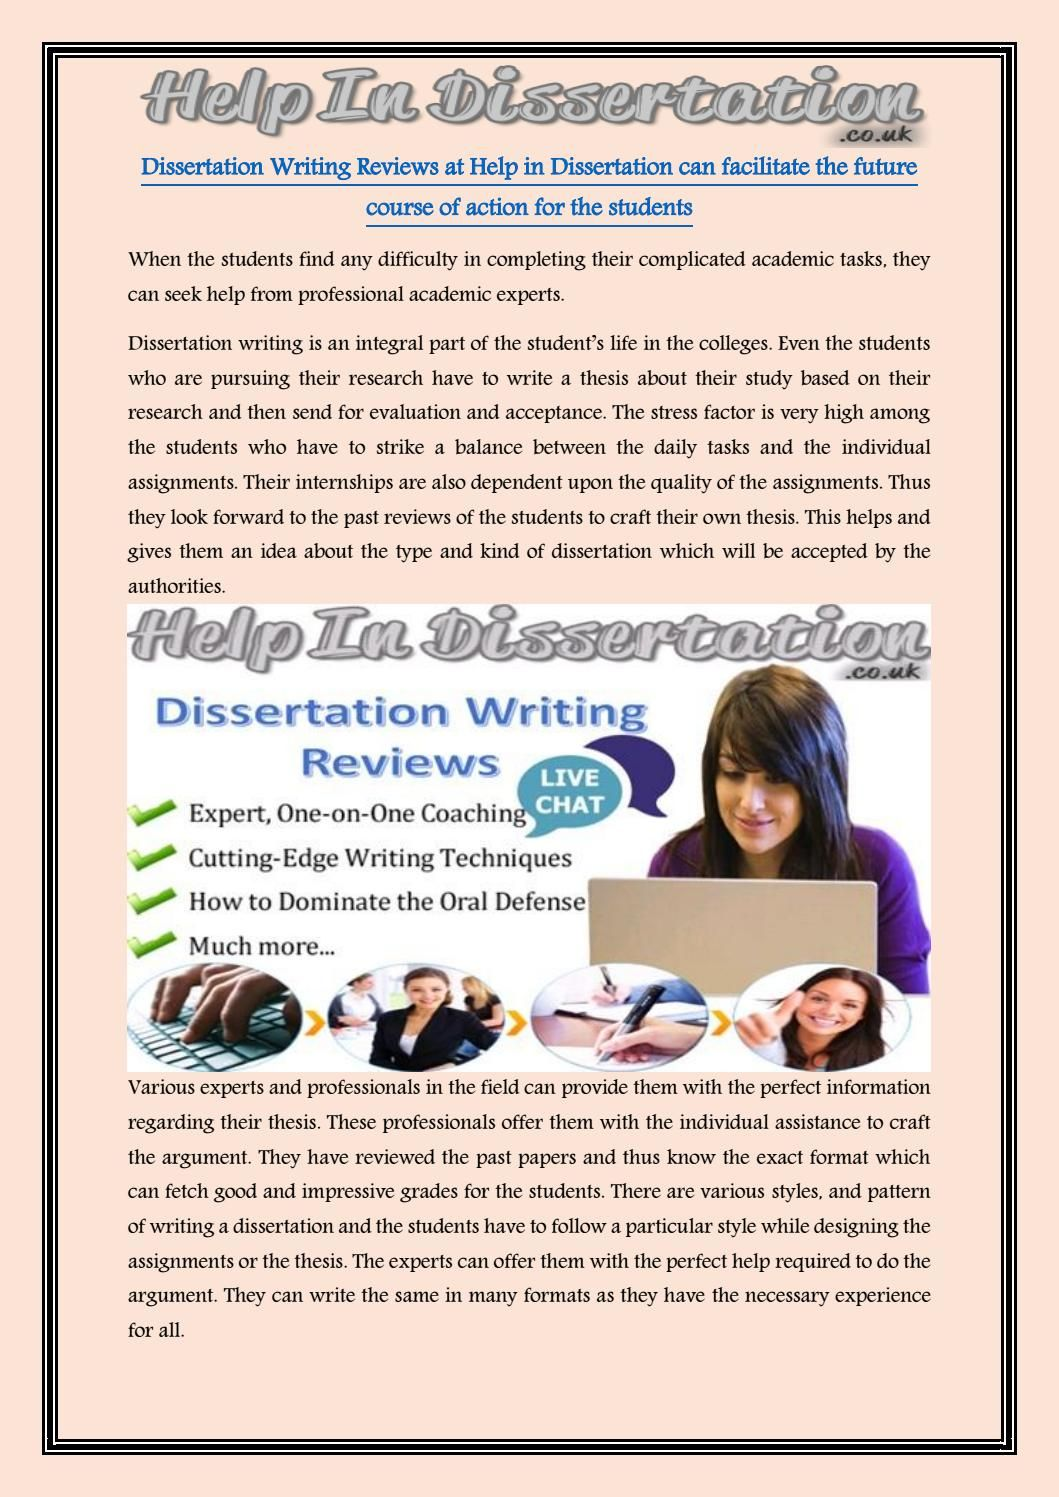 Essay how can internet help students in their studies